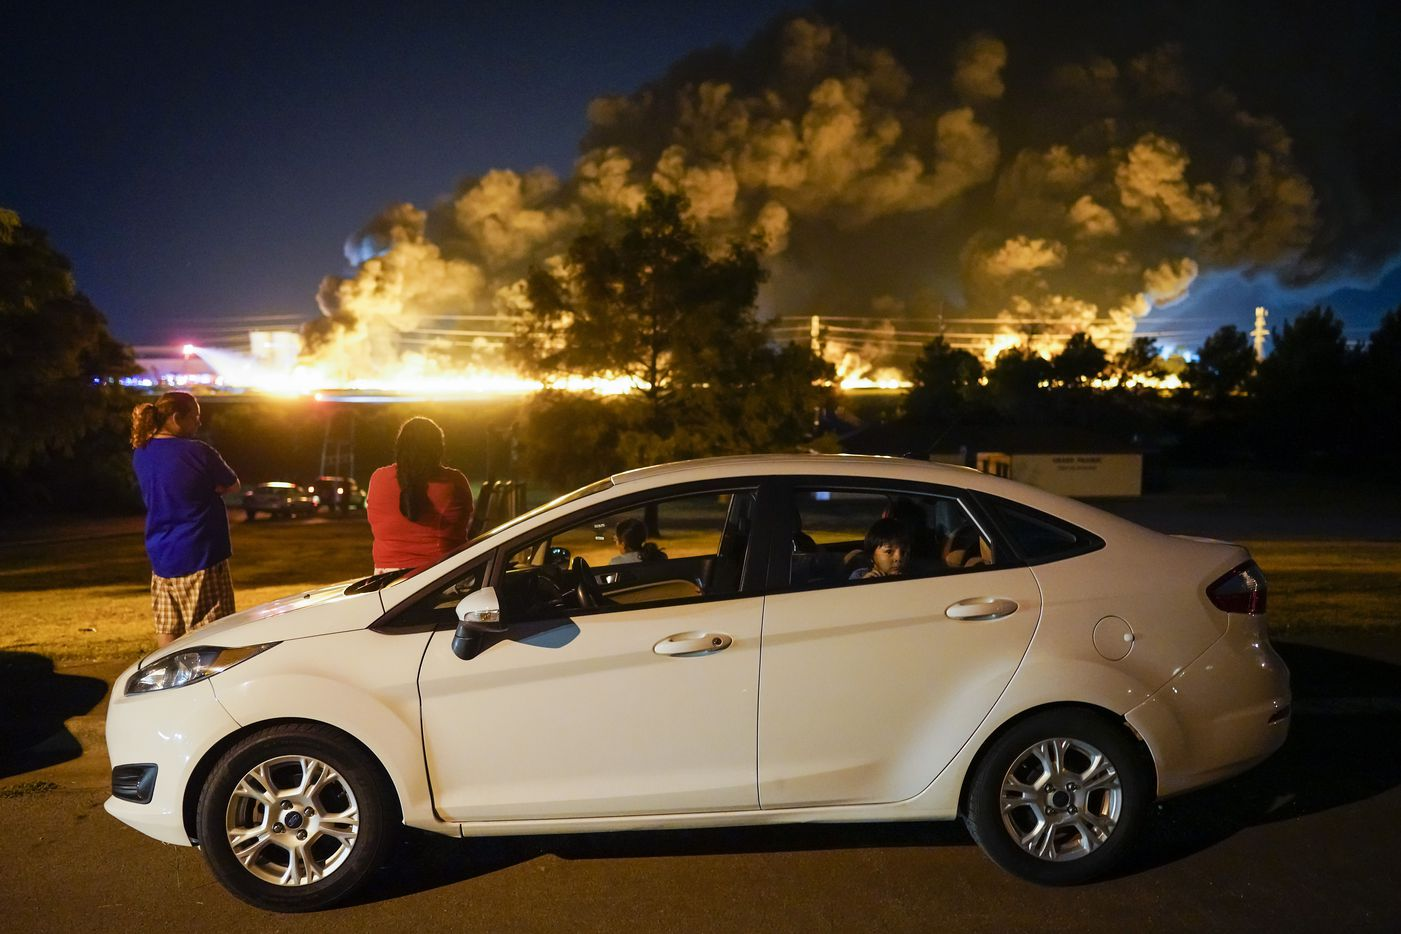 People watch from Tyre Park as fire crews battle a massive blaze in an industrial area of Grand Prairie in the early morning hours of Wednesday, Aug. 19, 2020.